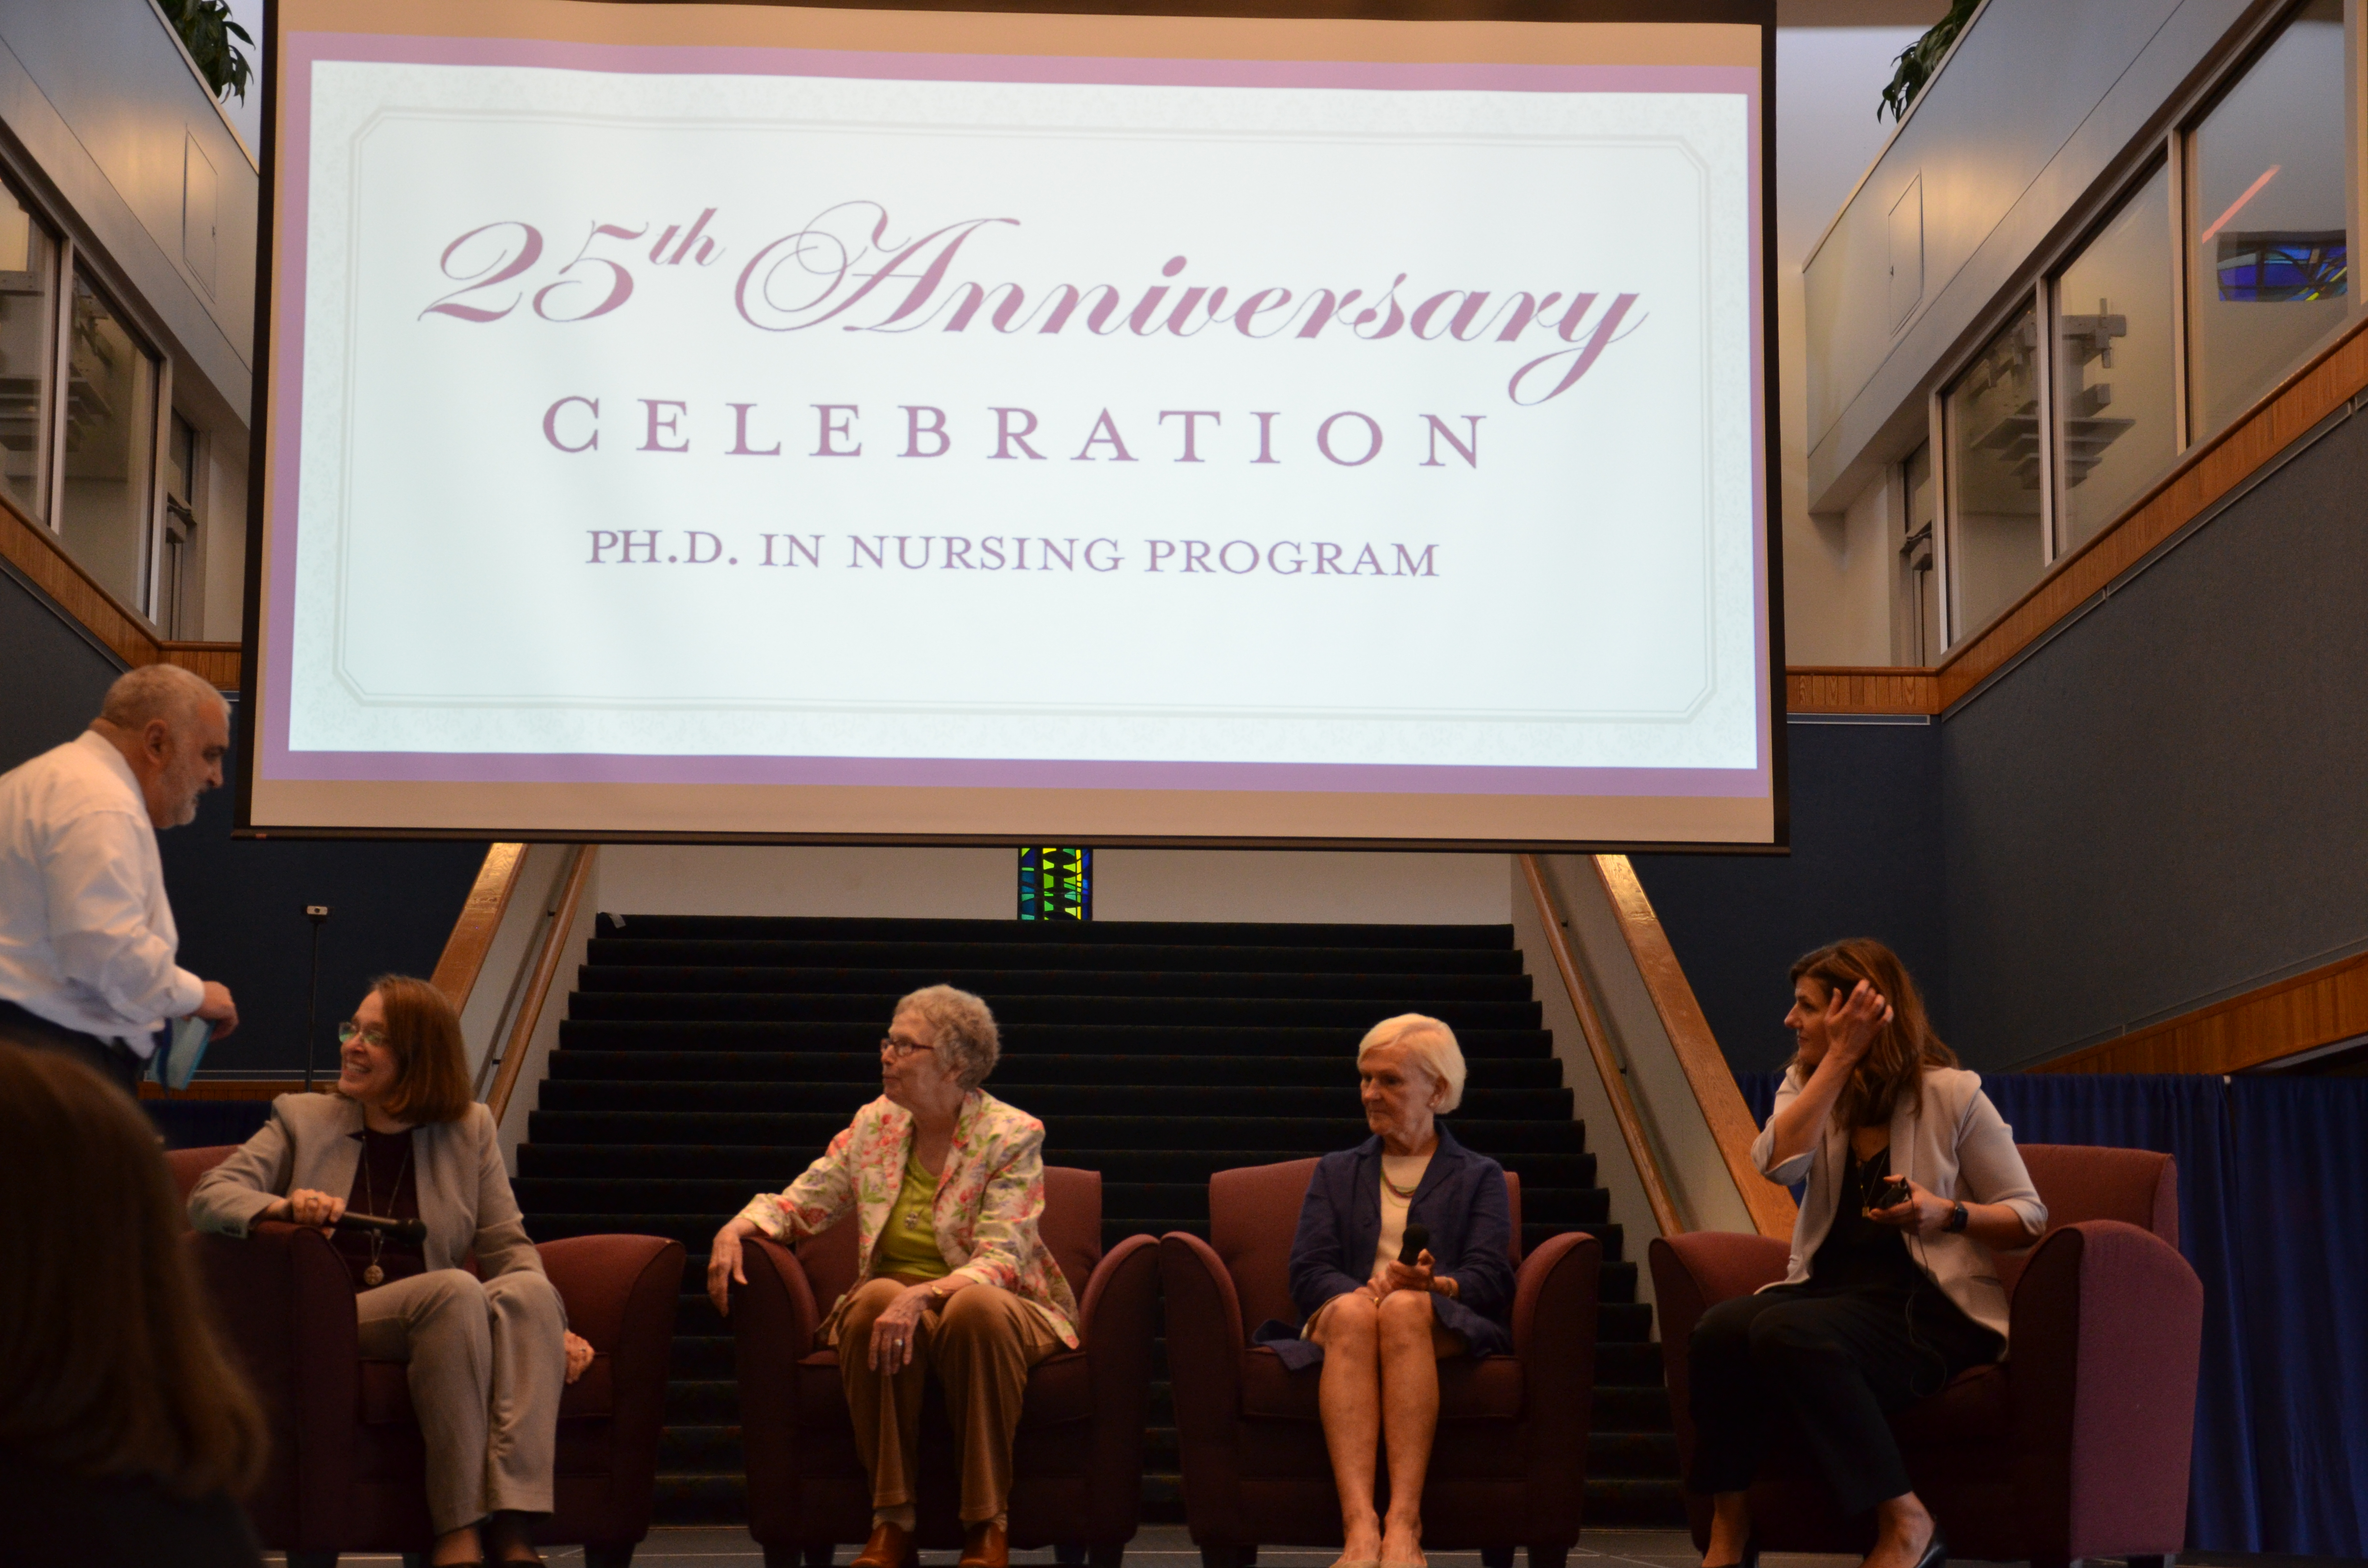 25th Anniversary of PhD Program Event Photos